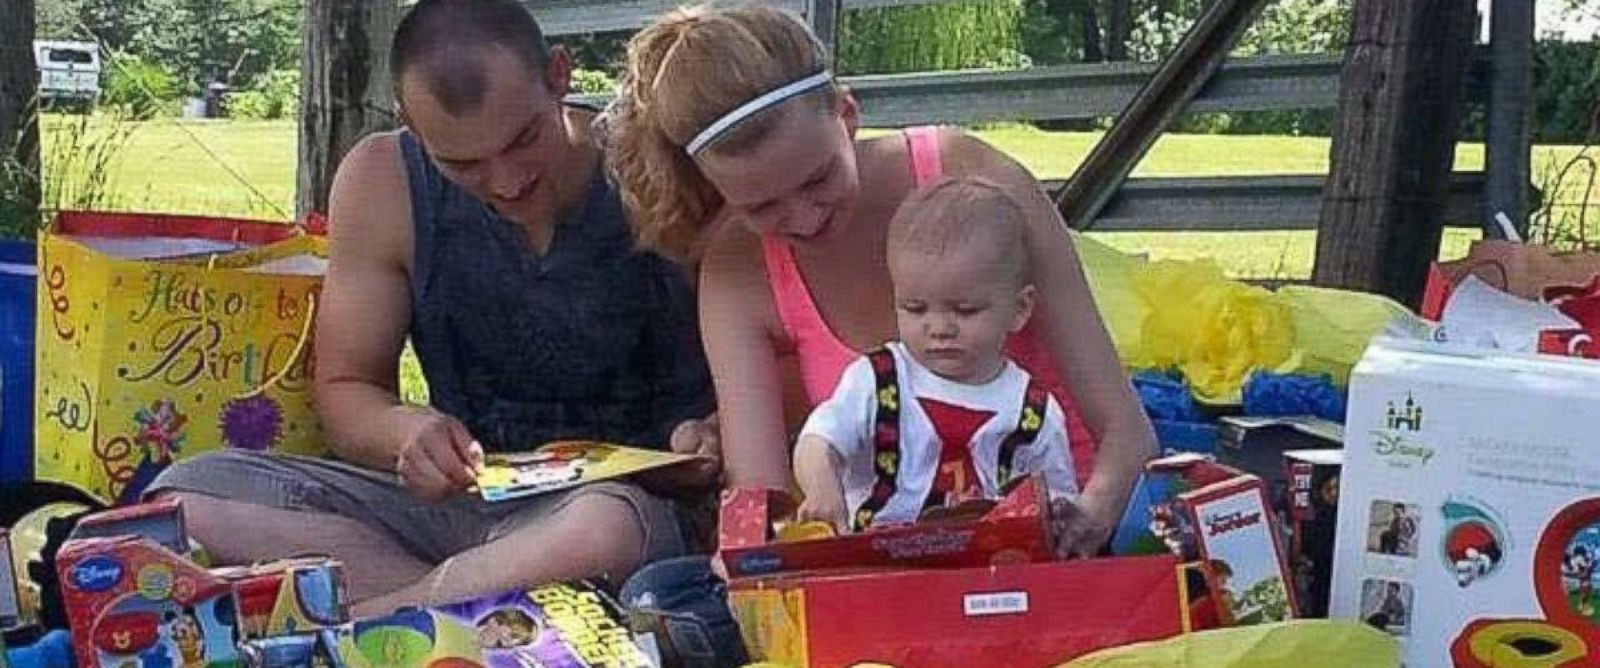 PHOTO: Corey Mantia, 22, and his son Parker, 1, died in a drunk driving accident on September 20, 2014.